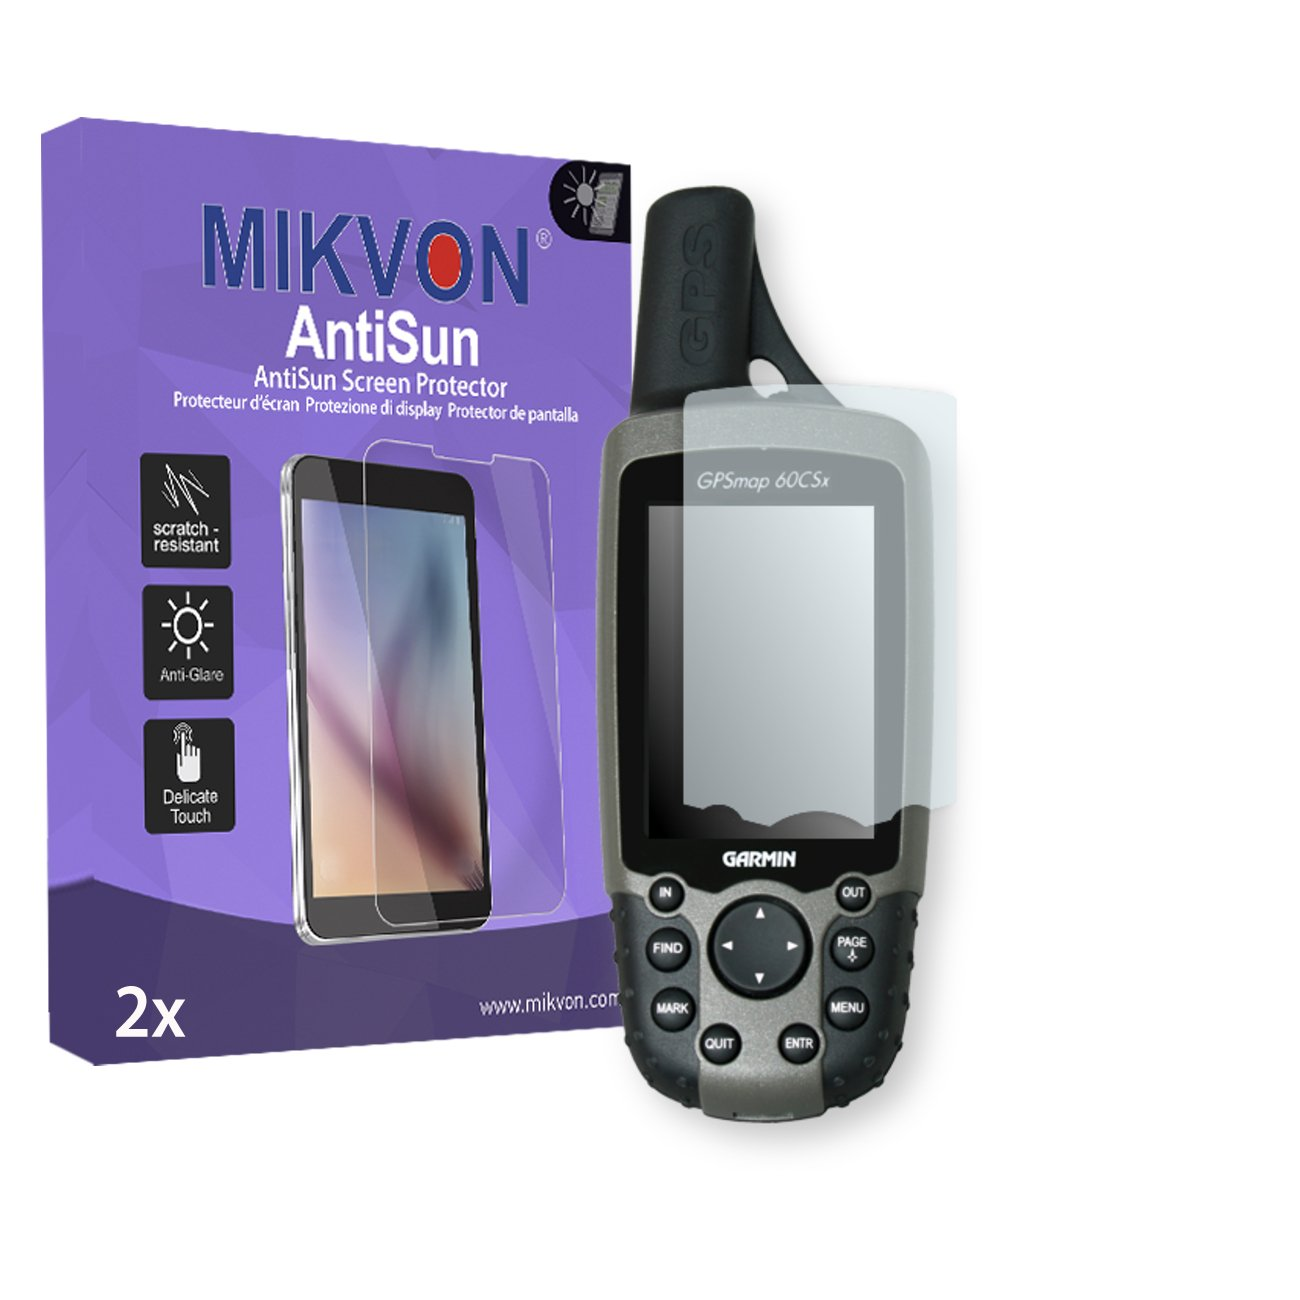 MIKVON 2X AntiSun Screen Protector for Garmin GPSMAP 60 CSX - Retail Package with Accessories